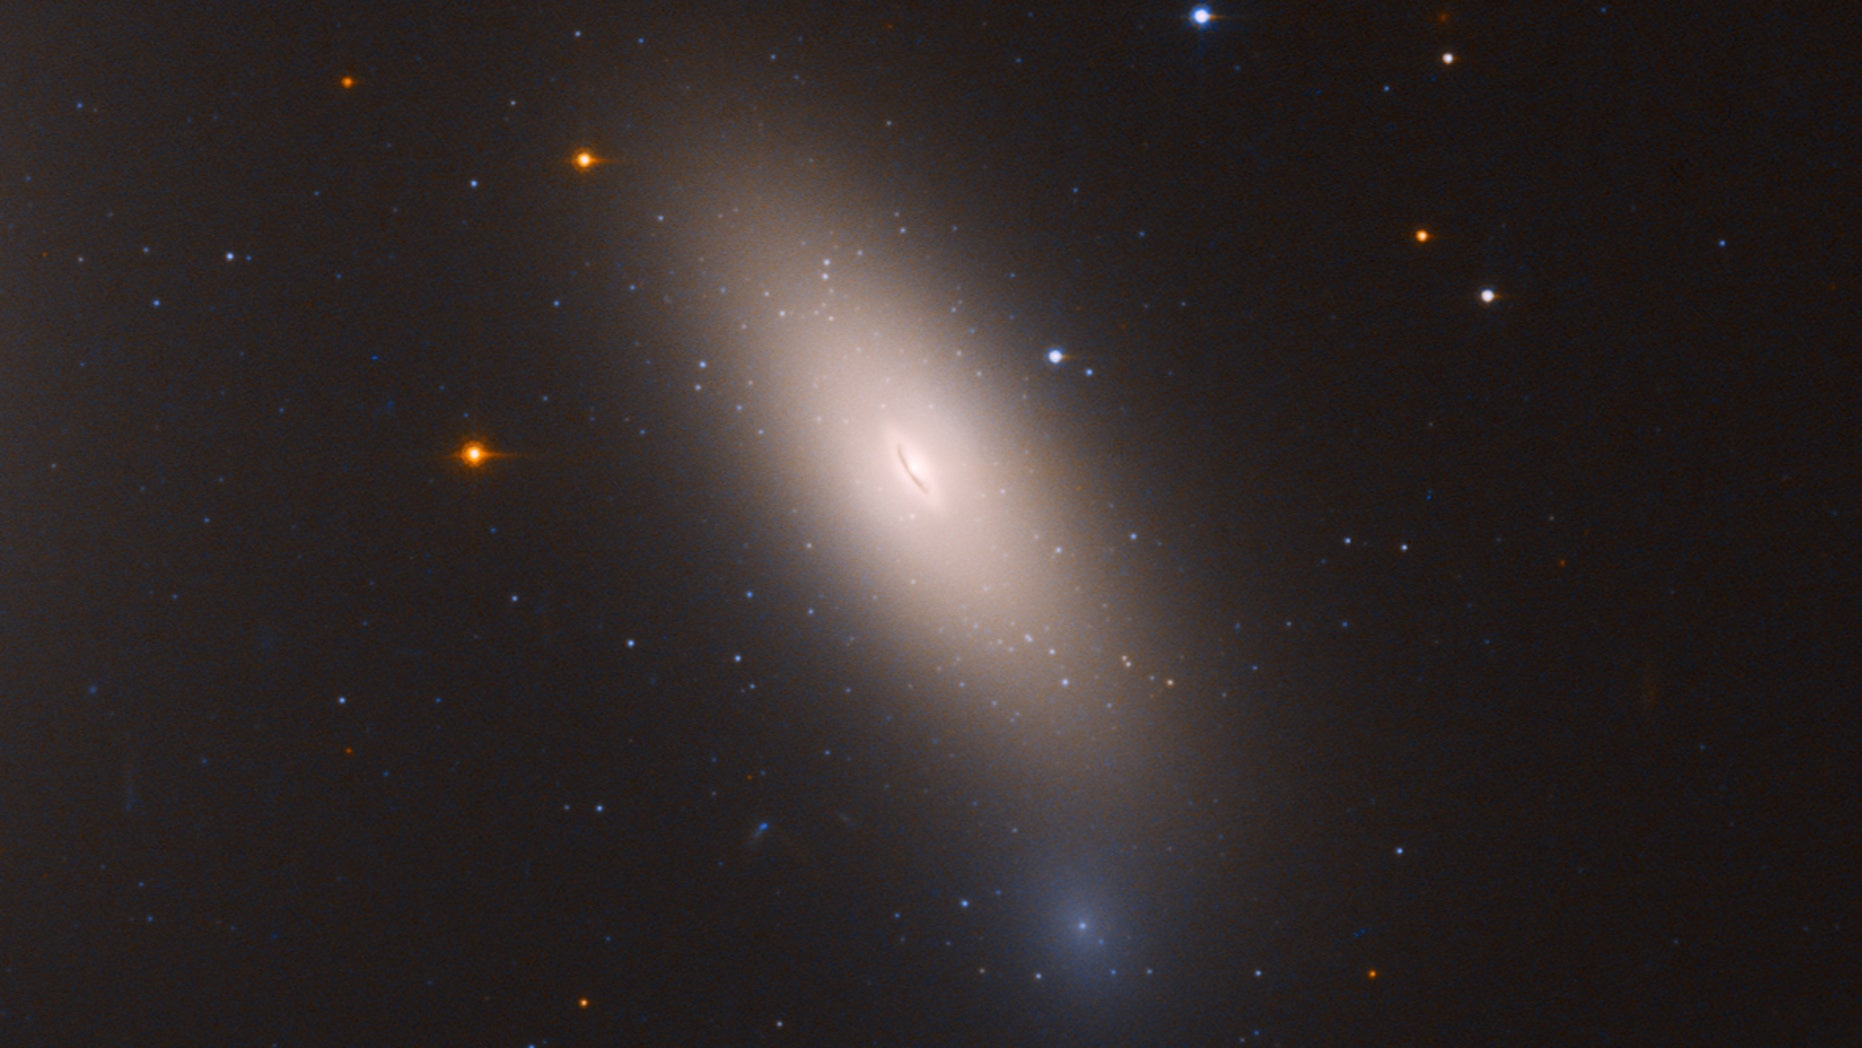 This Hubble Space Telescope image shows the galaxy NGC 1277, which is unique in that it is considered a relic of what galaxies were like in the early universe. NGC 1277 is composed exclusively of aging stars that were born 10 billion years ago.